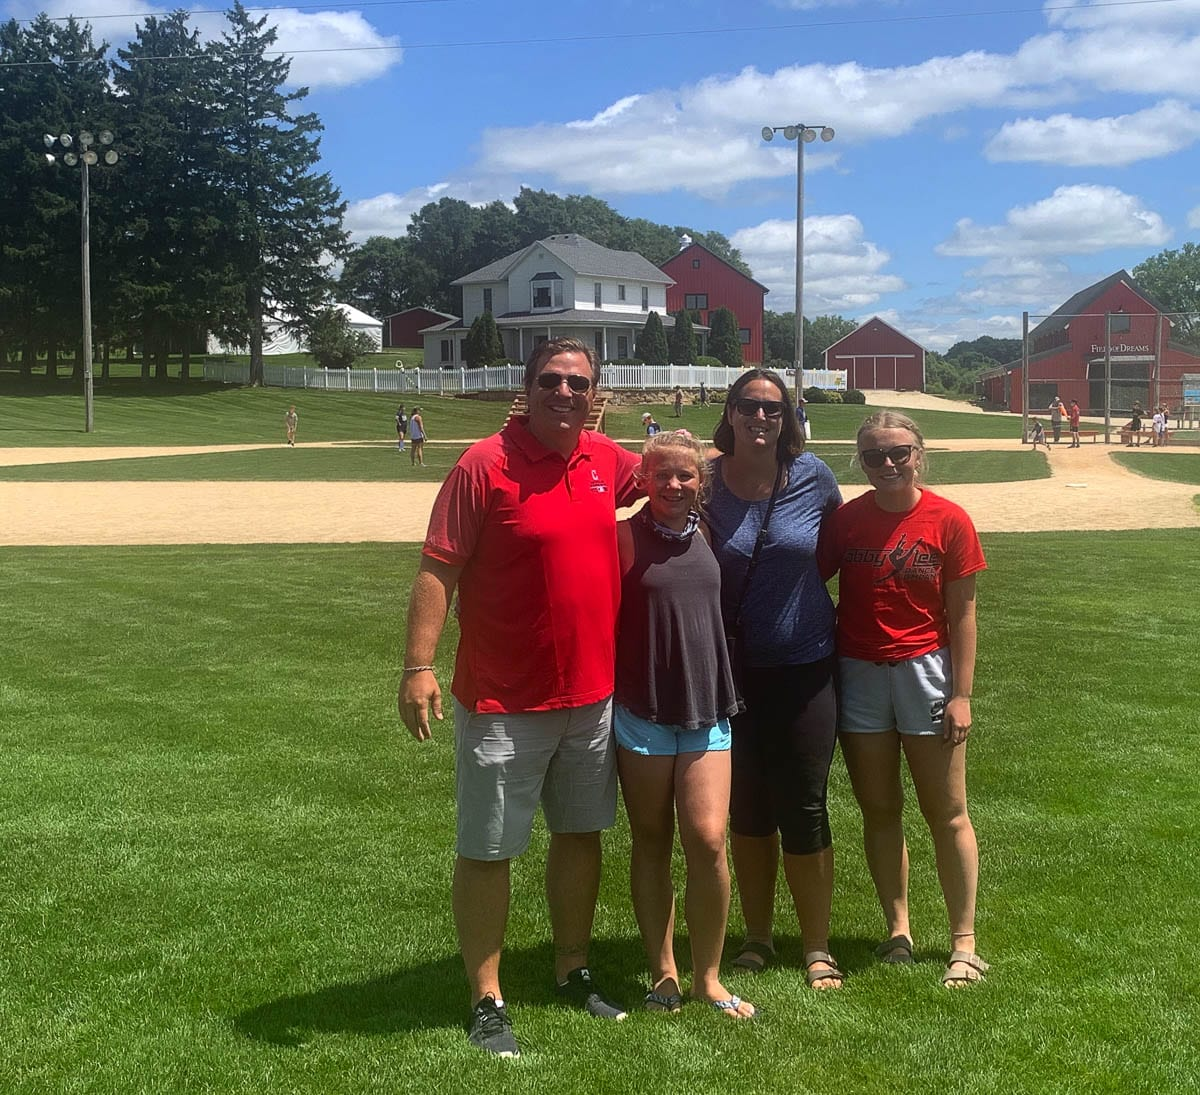 Is this heaven? No, it's the Castro family in Iowa. The Castros, movie buffs and historians, traveled the country to seek out locales of famous movies such as this baseball field in Iowa, home of Field of Dreams. Photo courtesy of the Castro family